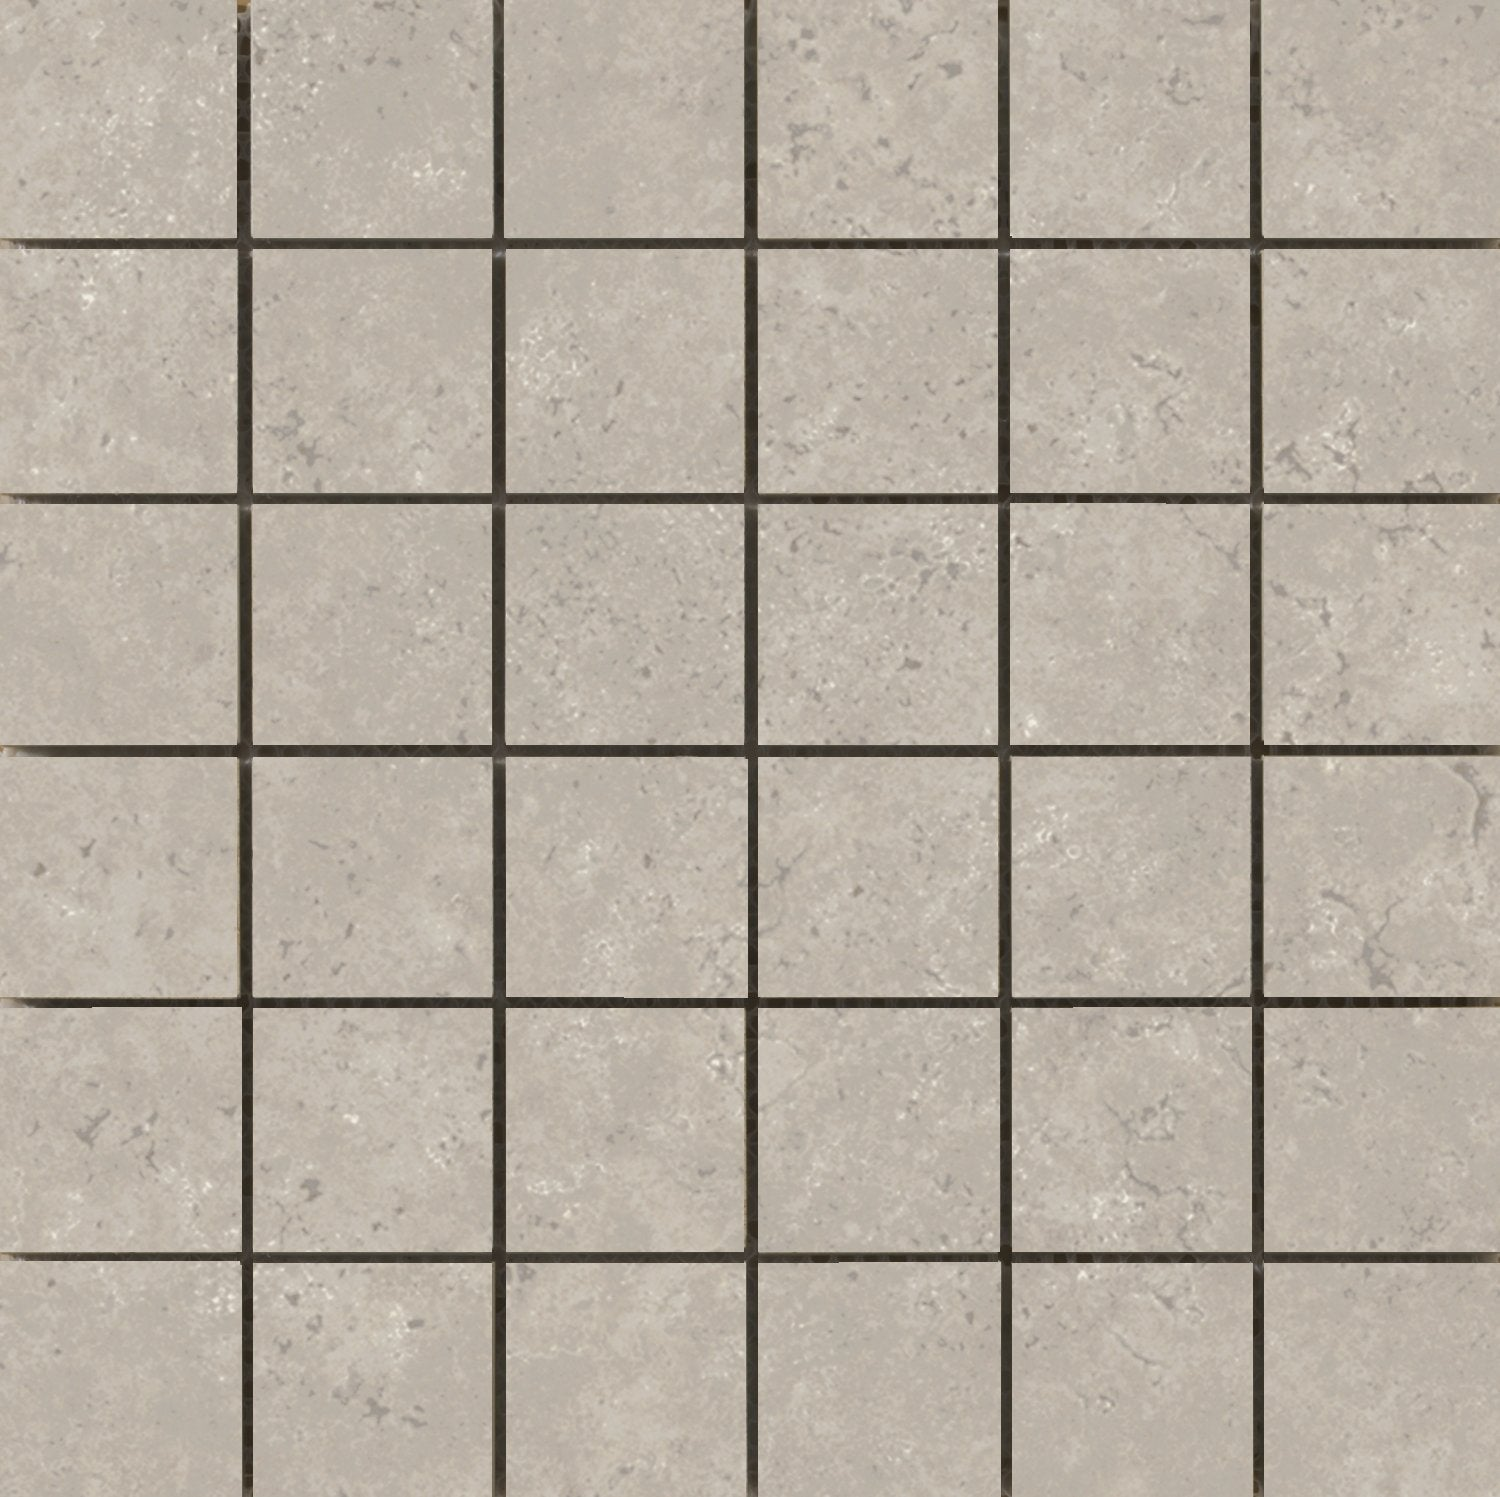 Tesola Porcelain Mosaic Floor/Wall Tile Taupe